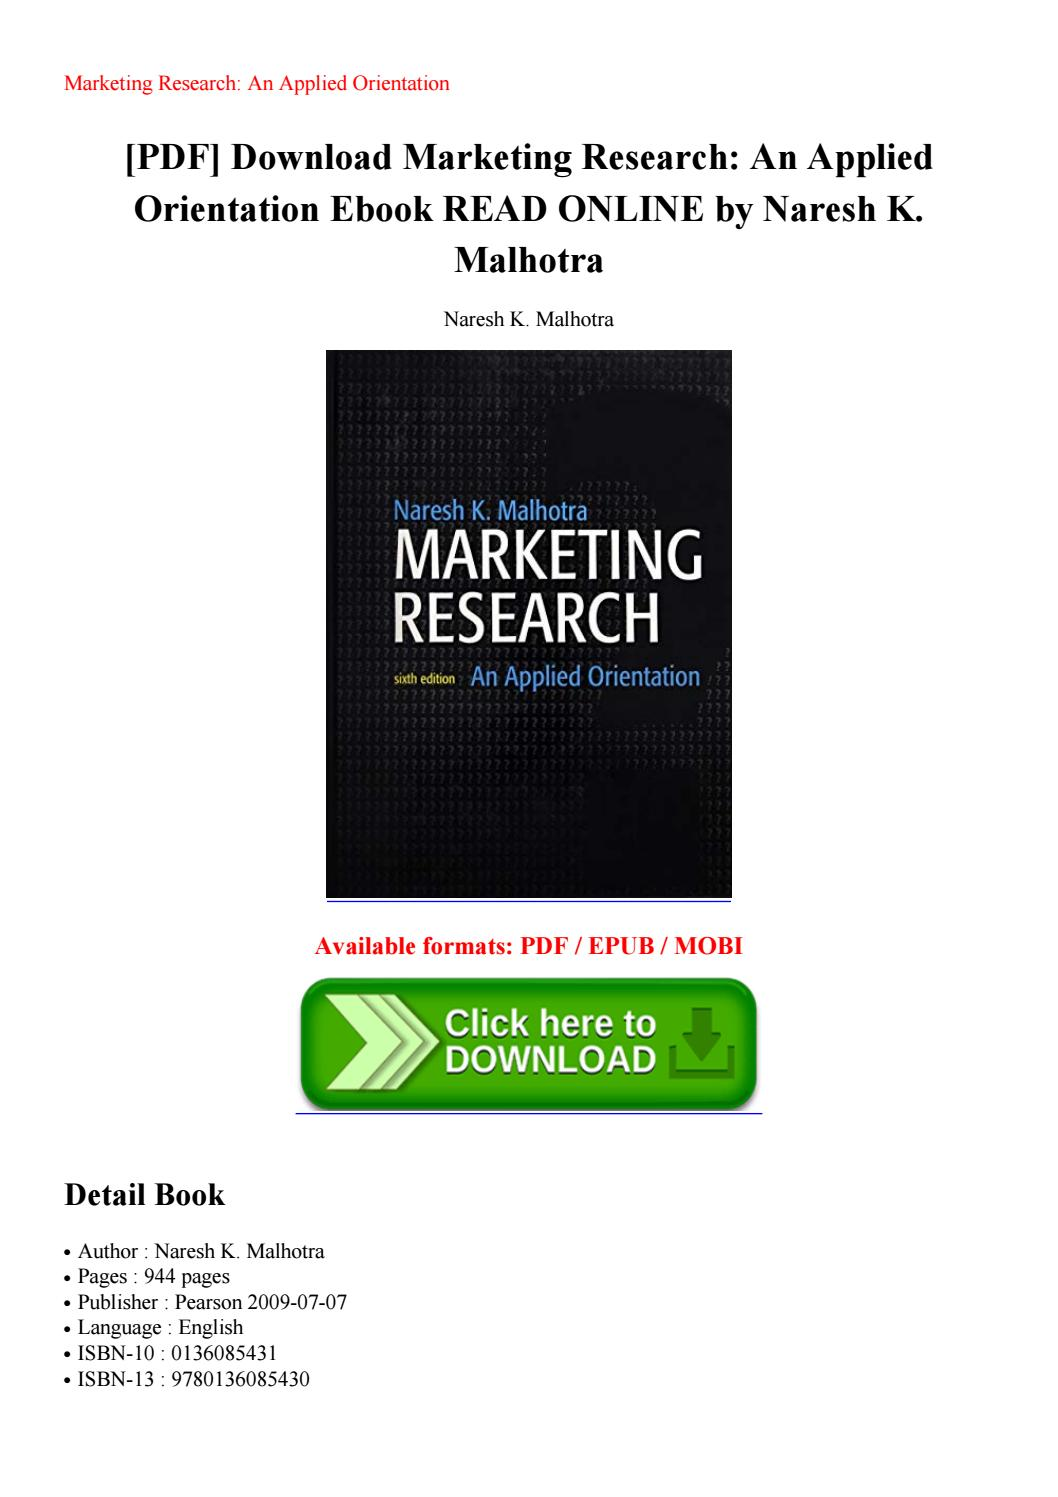 022 Page 1 Marketing Researchs Pdf Free Download Impressive Research Papers Full